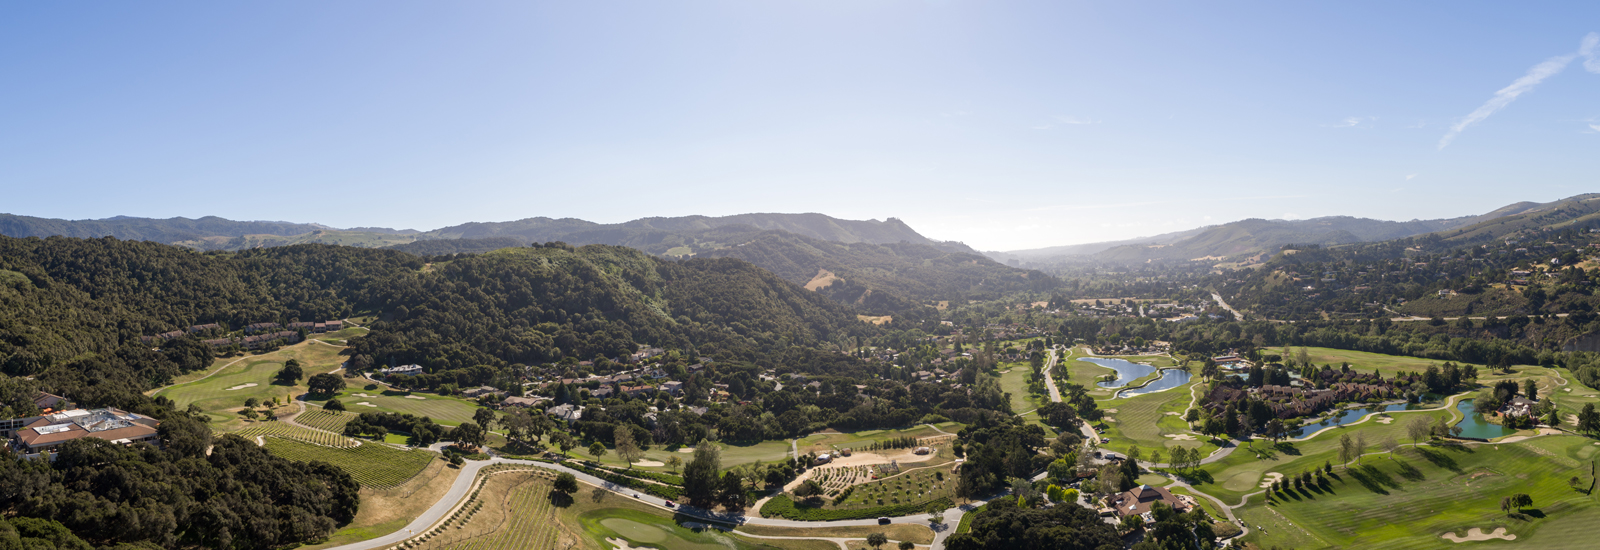 Carmel-Valley-Ranch_Property_Aerial_facing-west_pano_LG-Drone-H550